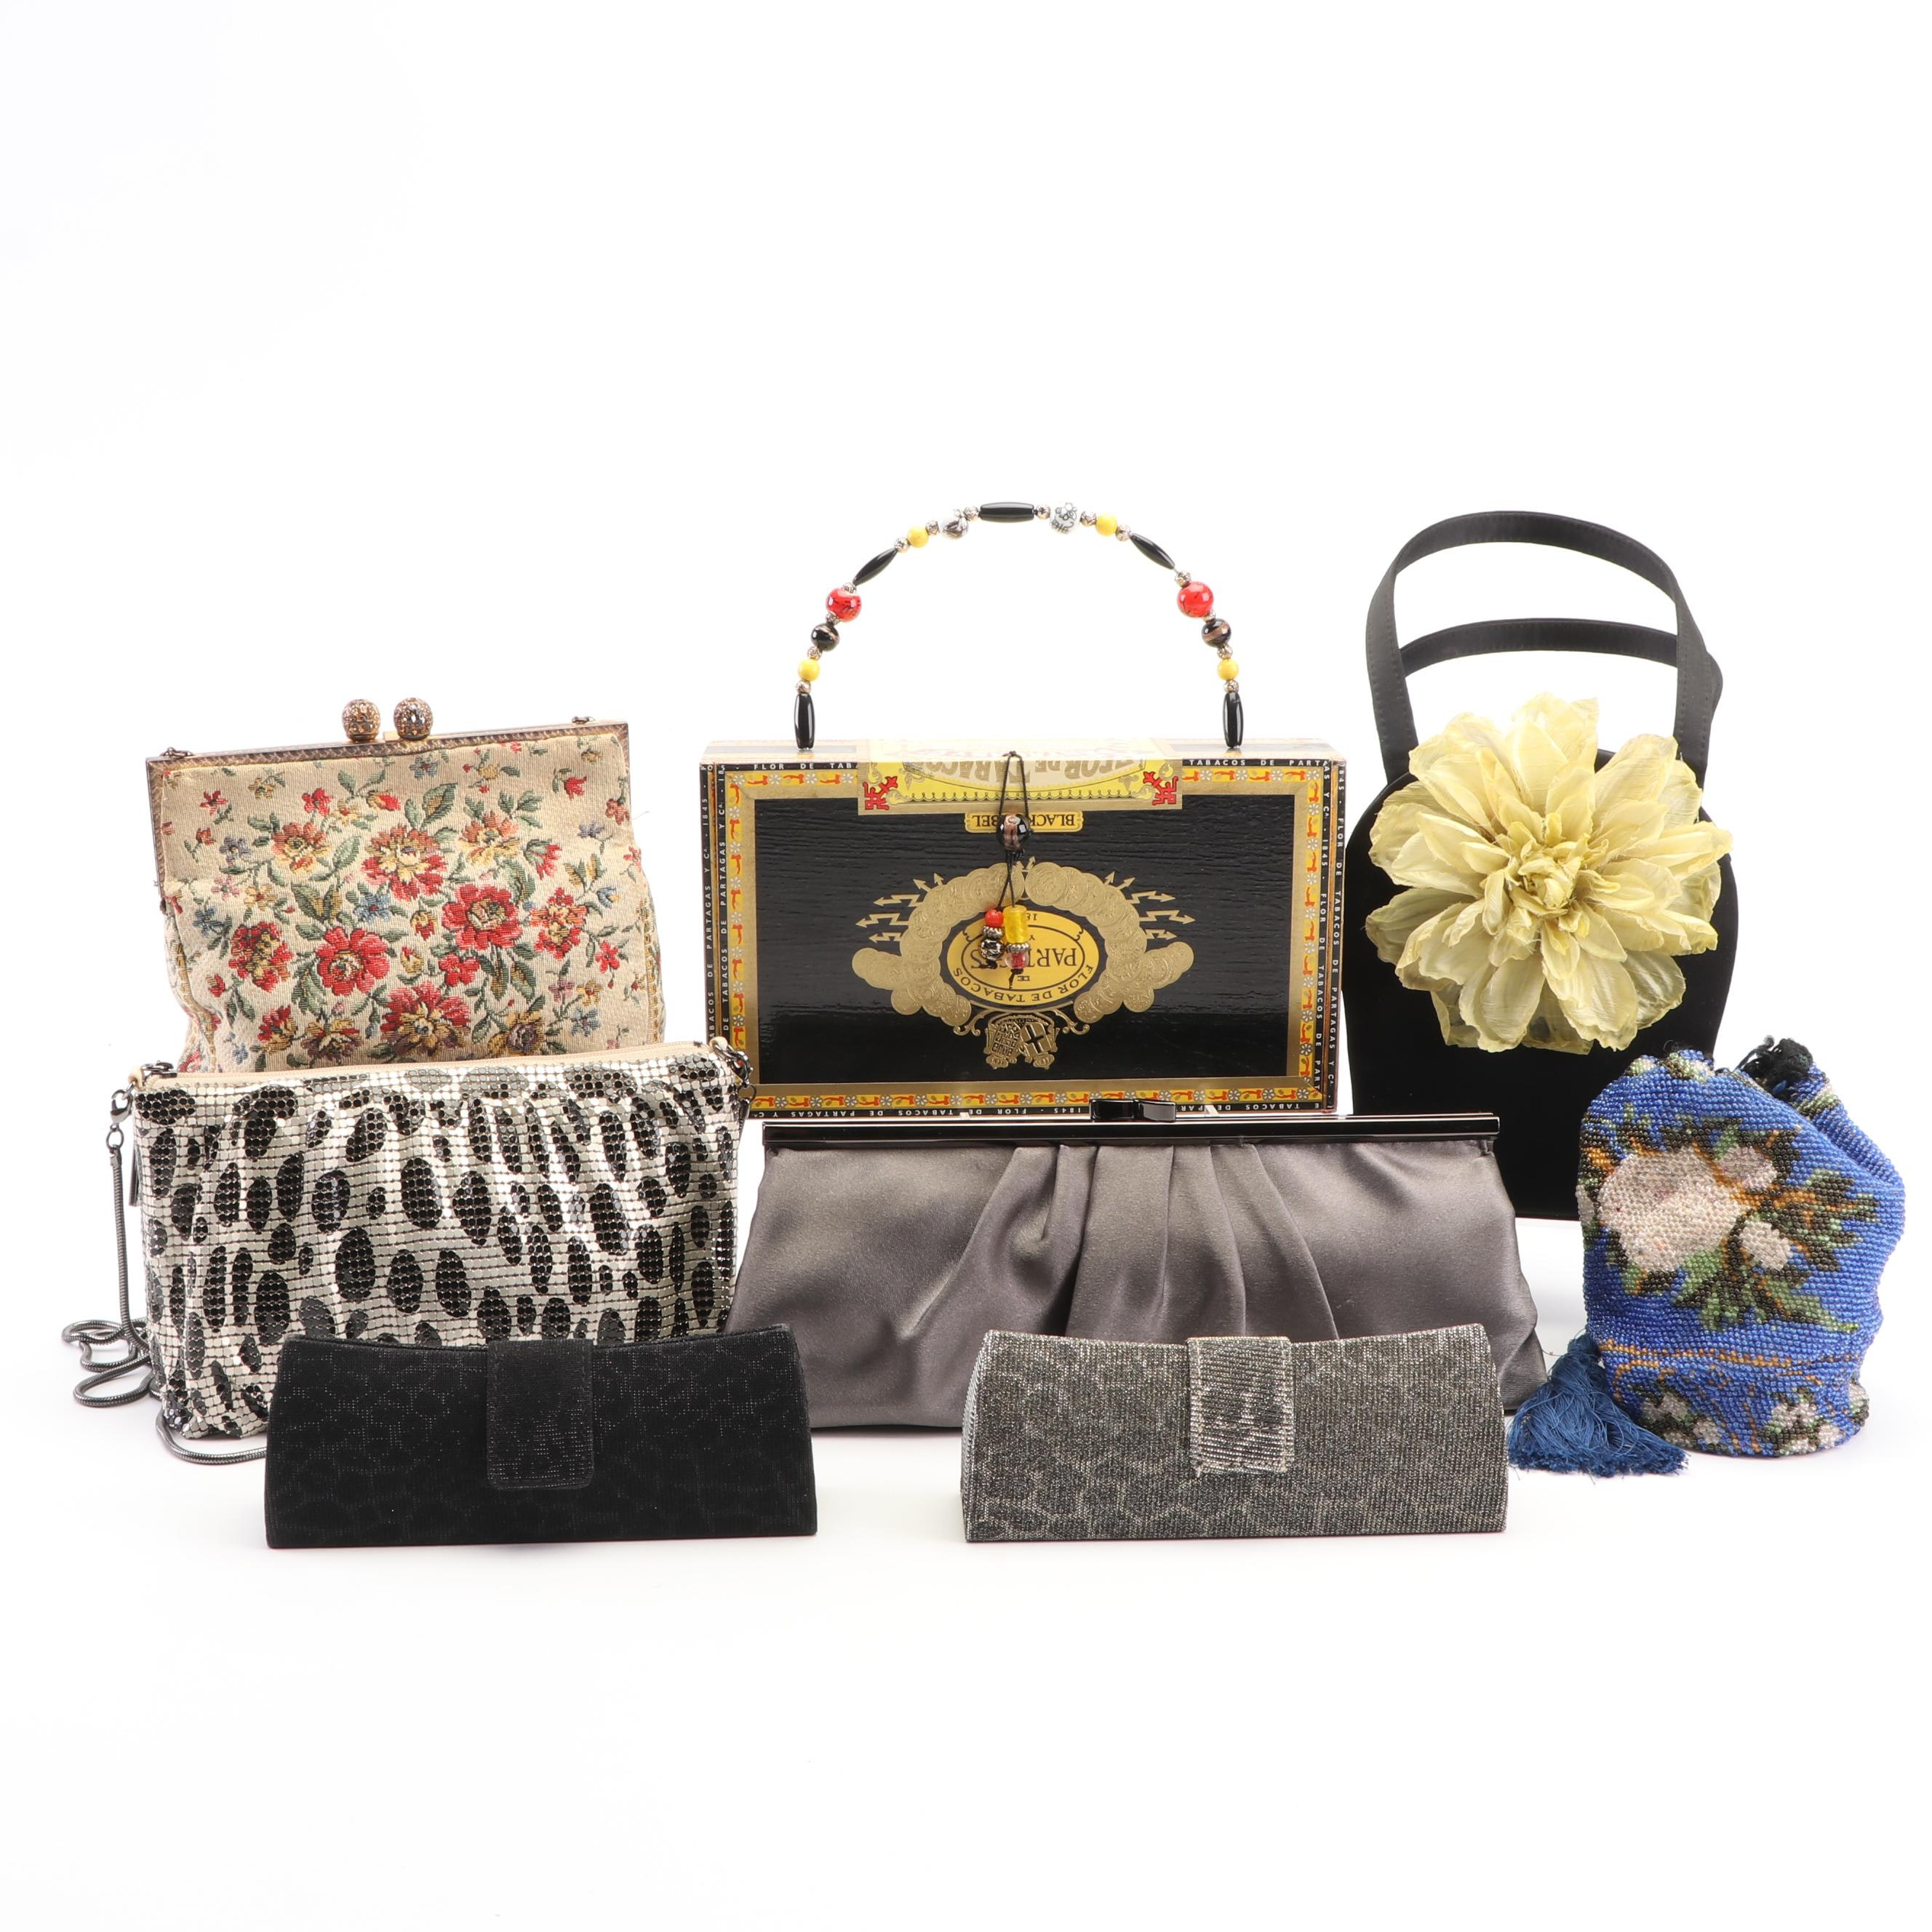 Collection of Evening Bags Including Whiting & Davis, Walborg and Carlo Fellini